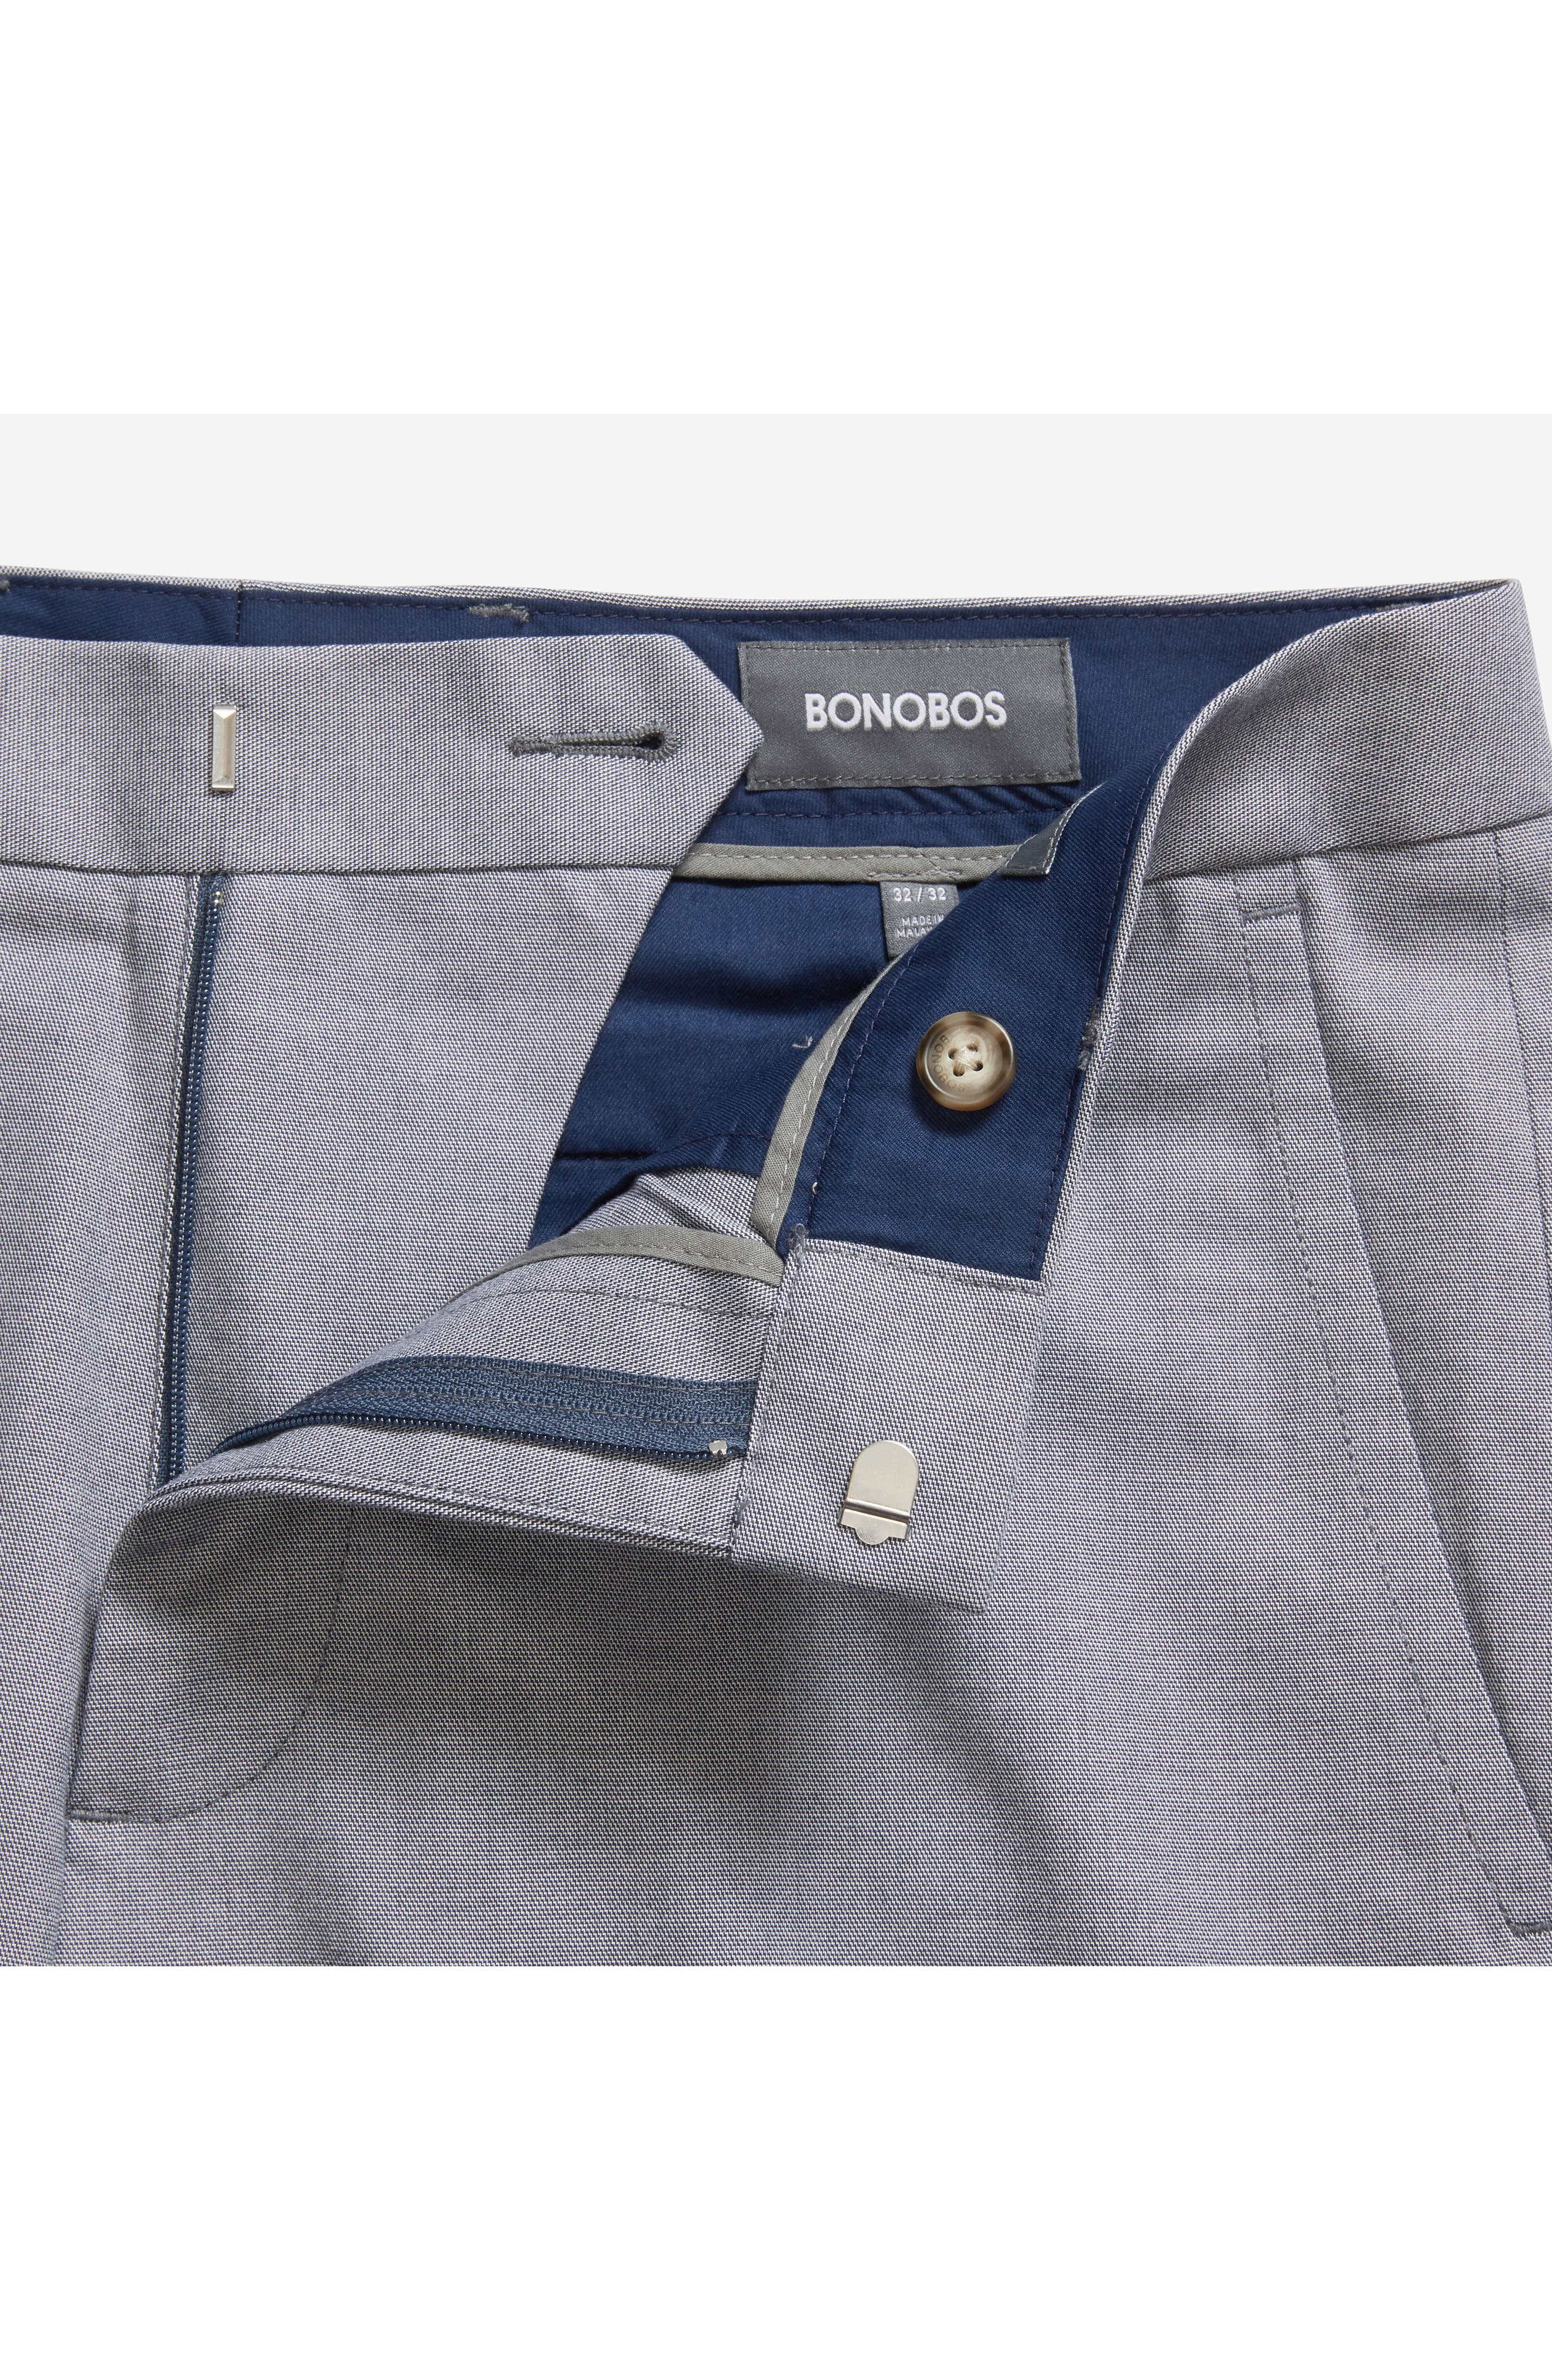 Weekday Warrior Flat Front Stretch Cotton Pants,                             Alternate thumbnail 10, color,